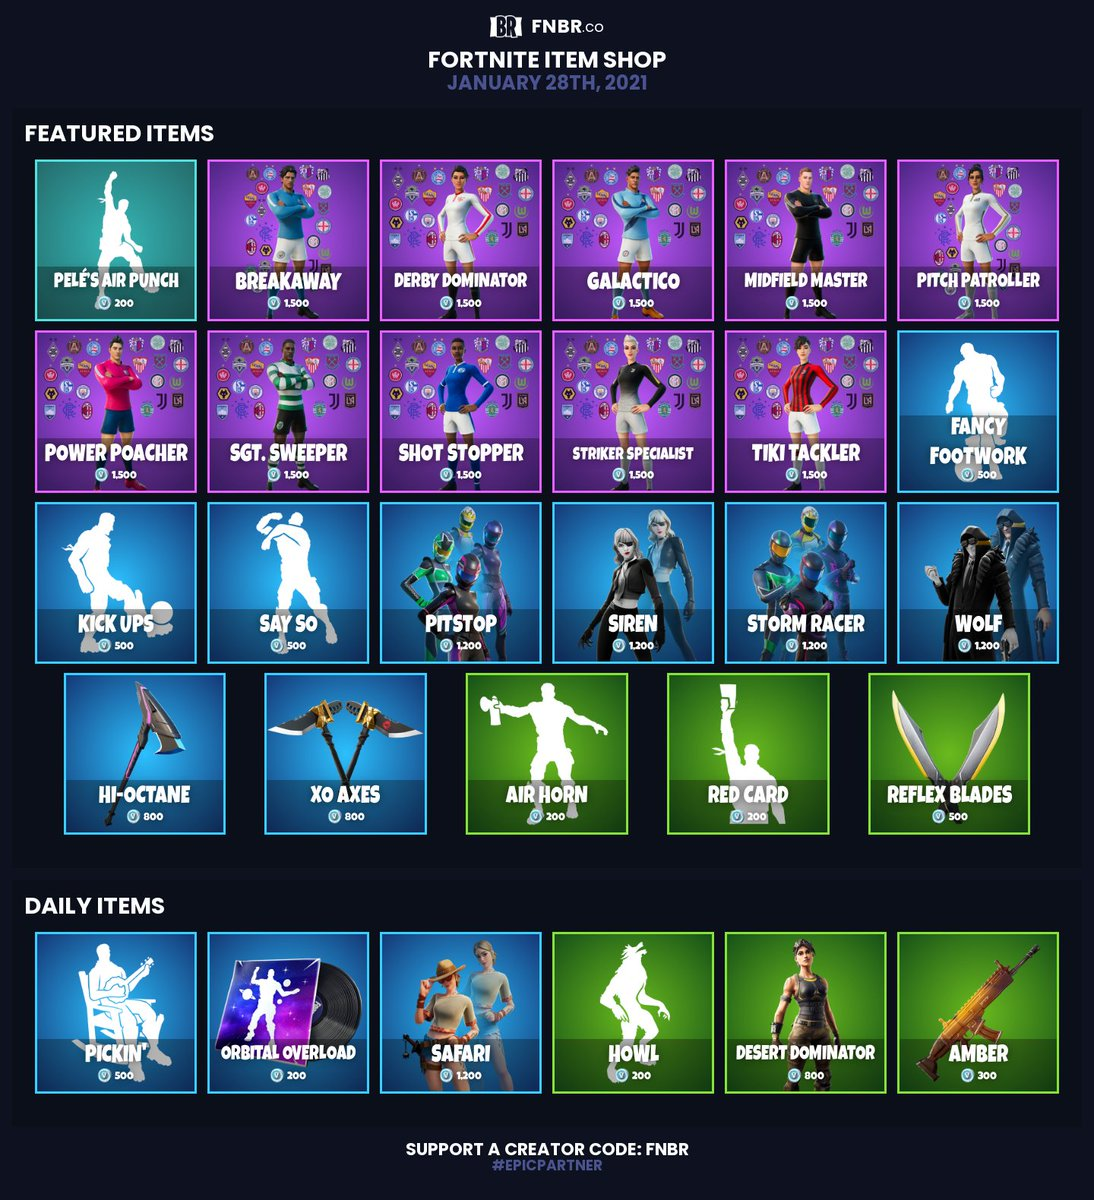 #Fortnite Item Shop for January 28th 2021 |  Use creator code 'fnbr' if you'd like to support us! (#epicpartner) Set personalised reminders on our iOS app: